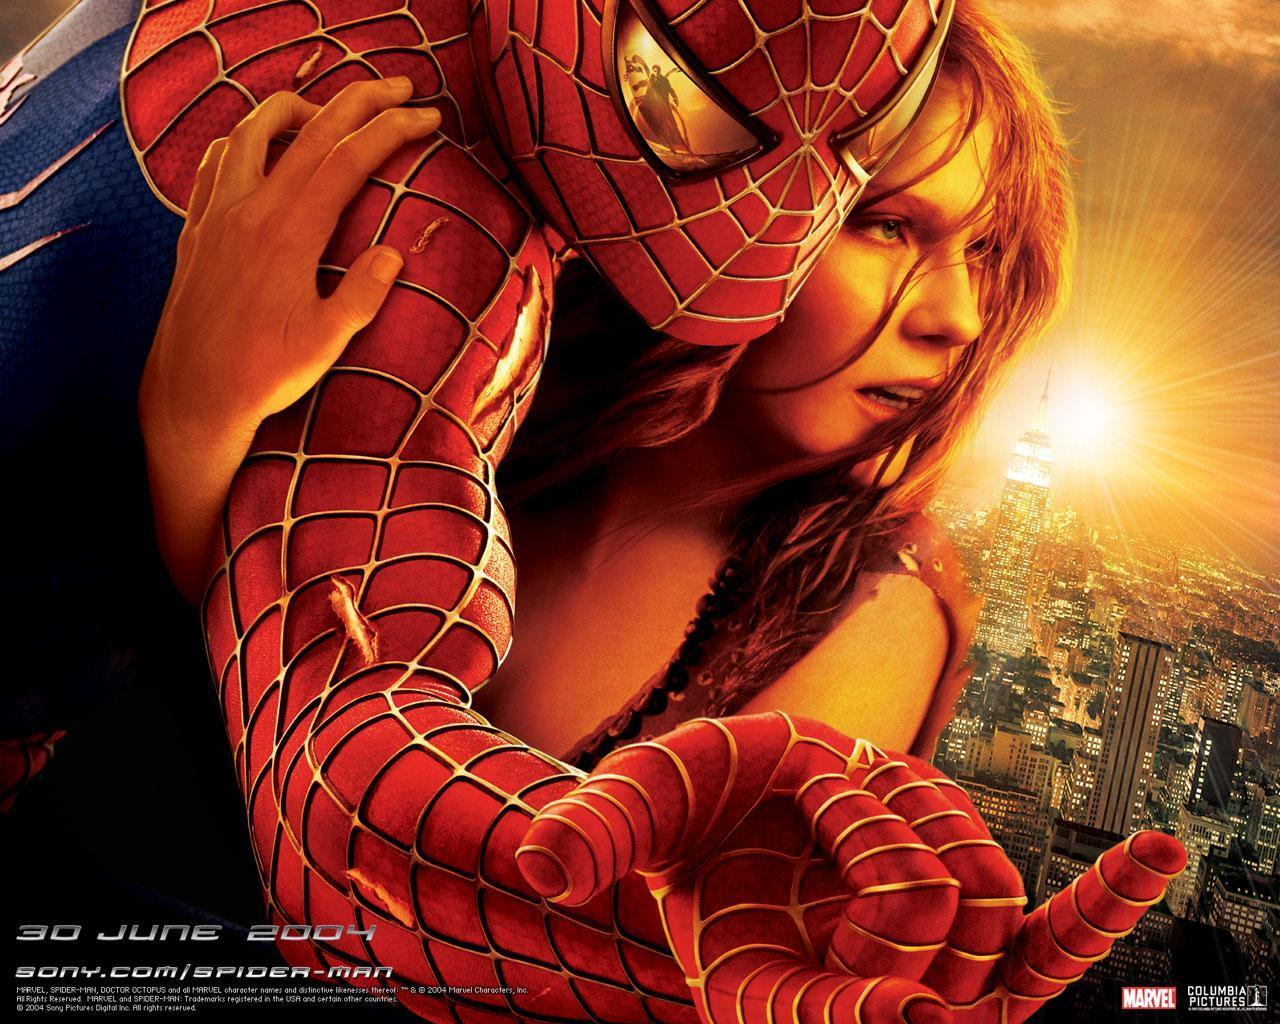 http://2.bp.blogspot.com/-BLRrkSyxMNo/TgKkJxGeuJI/AAAAAAAAEOY/yc7ZAAFVHxA/s1600/Spiderman-wallpapers-peter-parker-and-mary-jane-watson-9040137-1280-1024.jpg